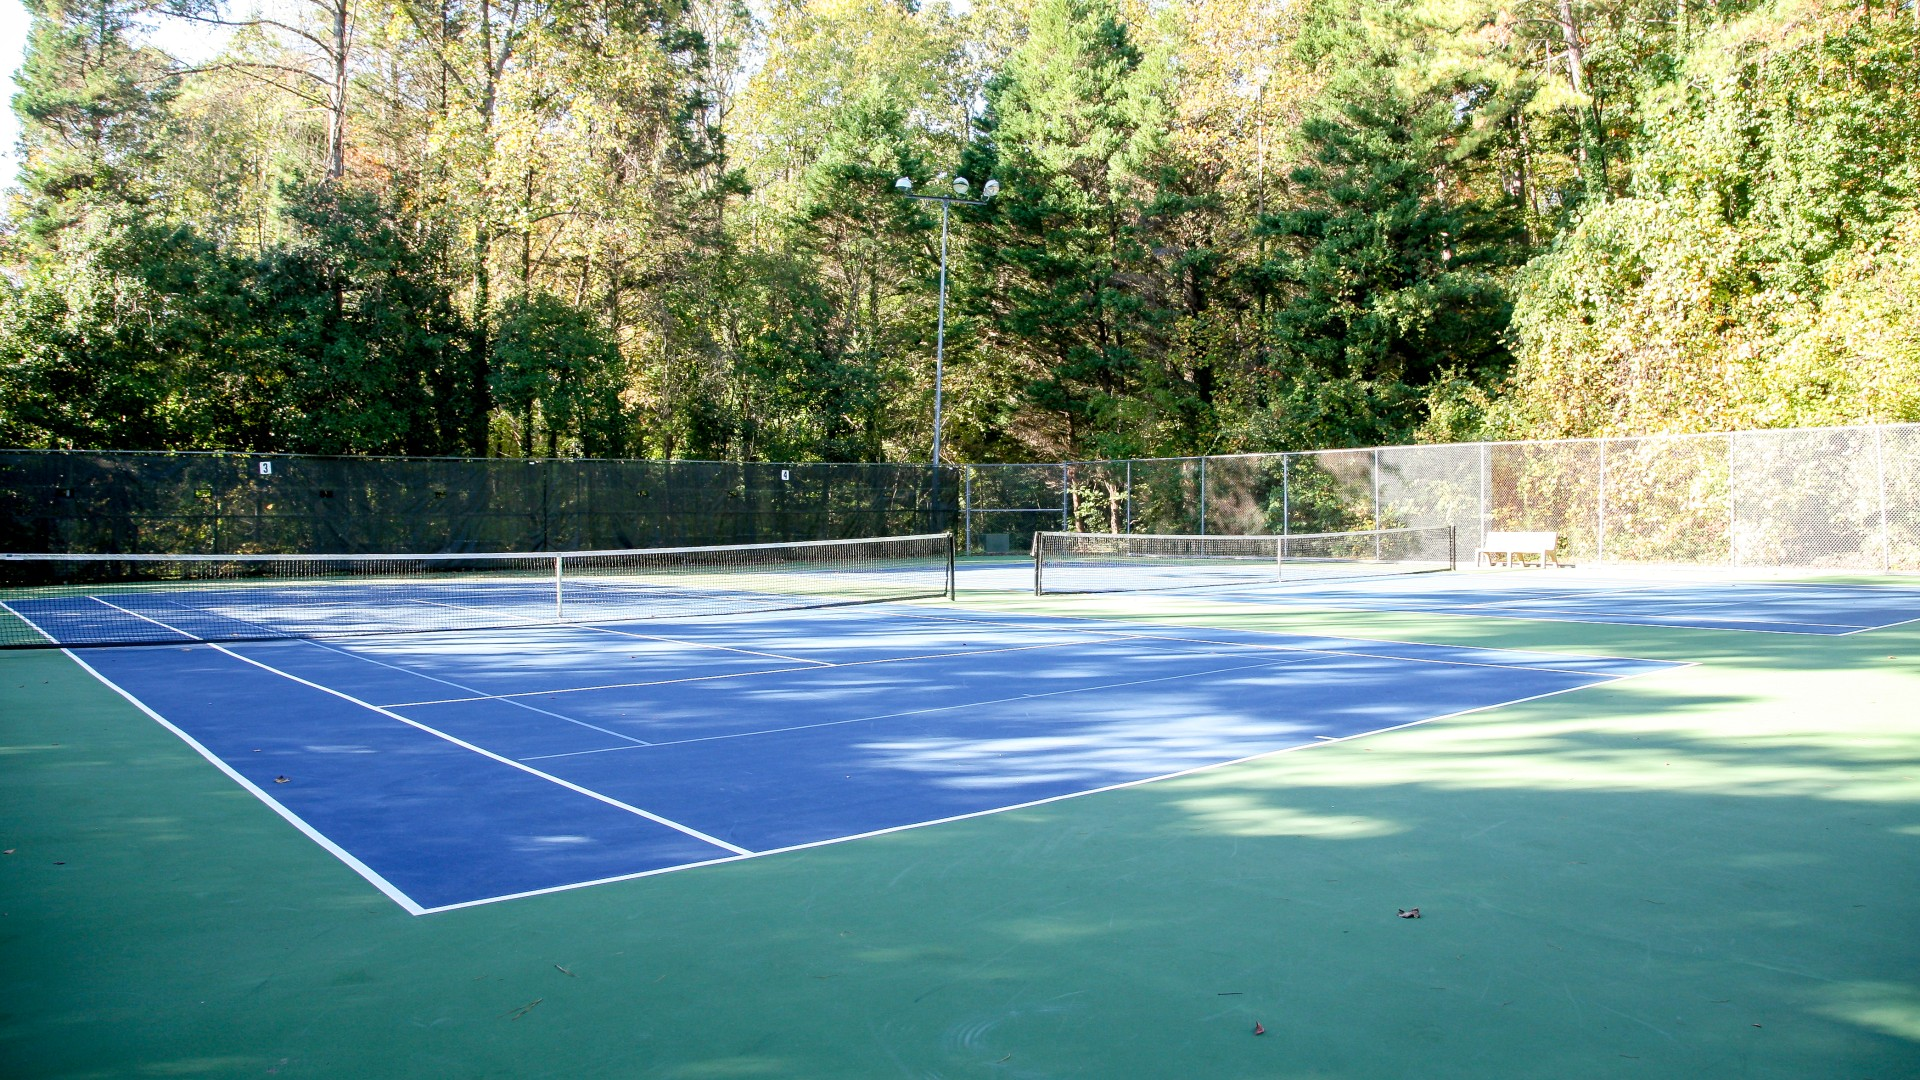 Outdoor tennis courts at Glen Eden Pilot Par. There are four courts total